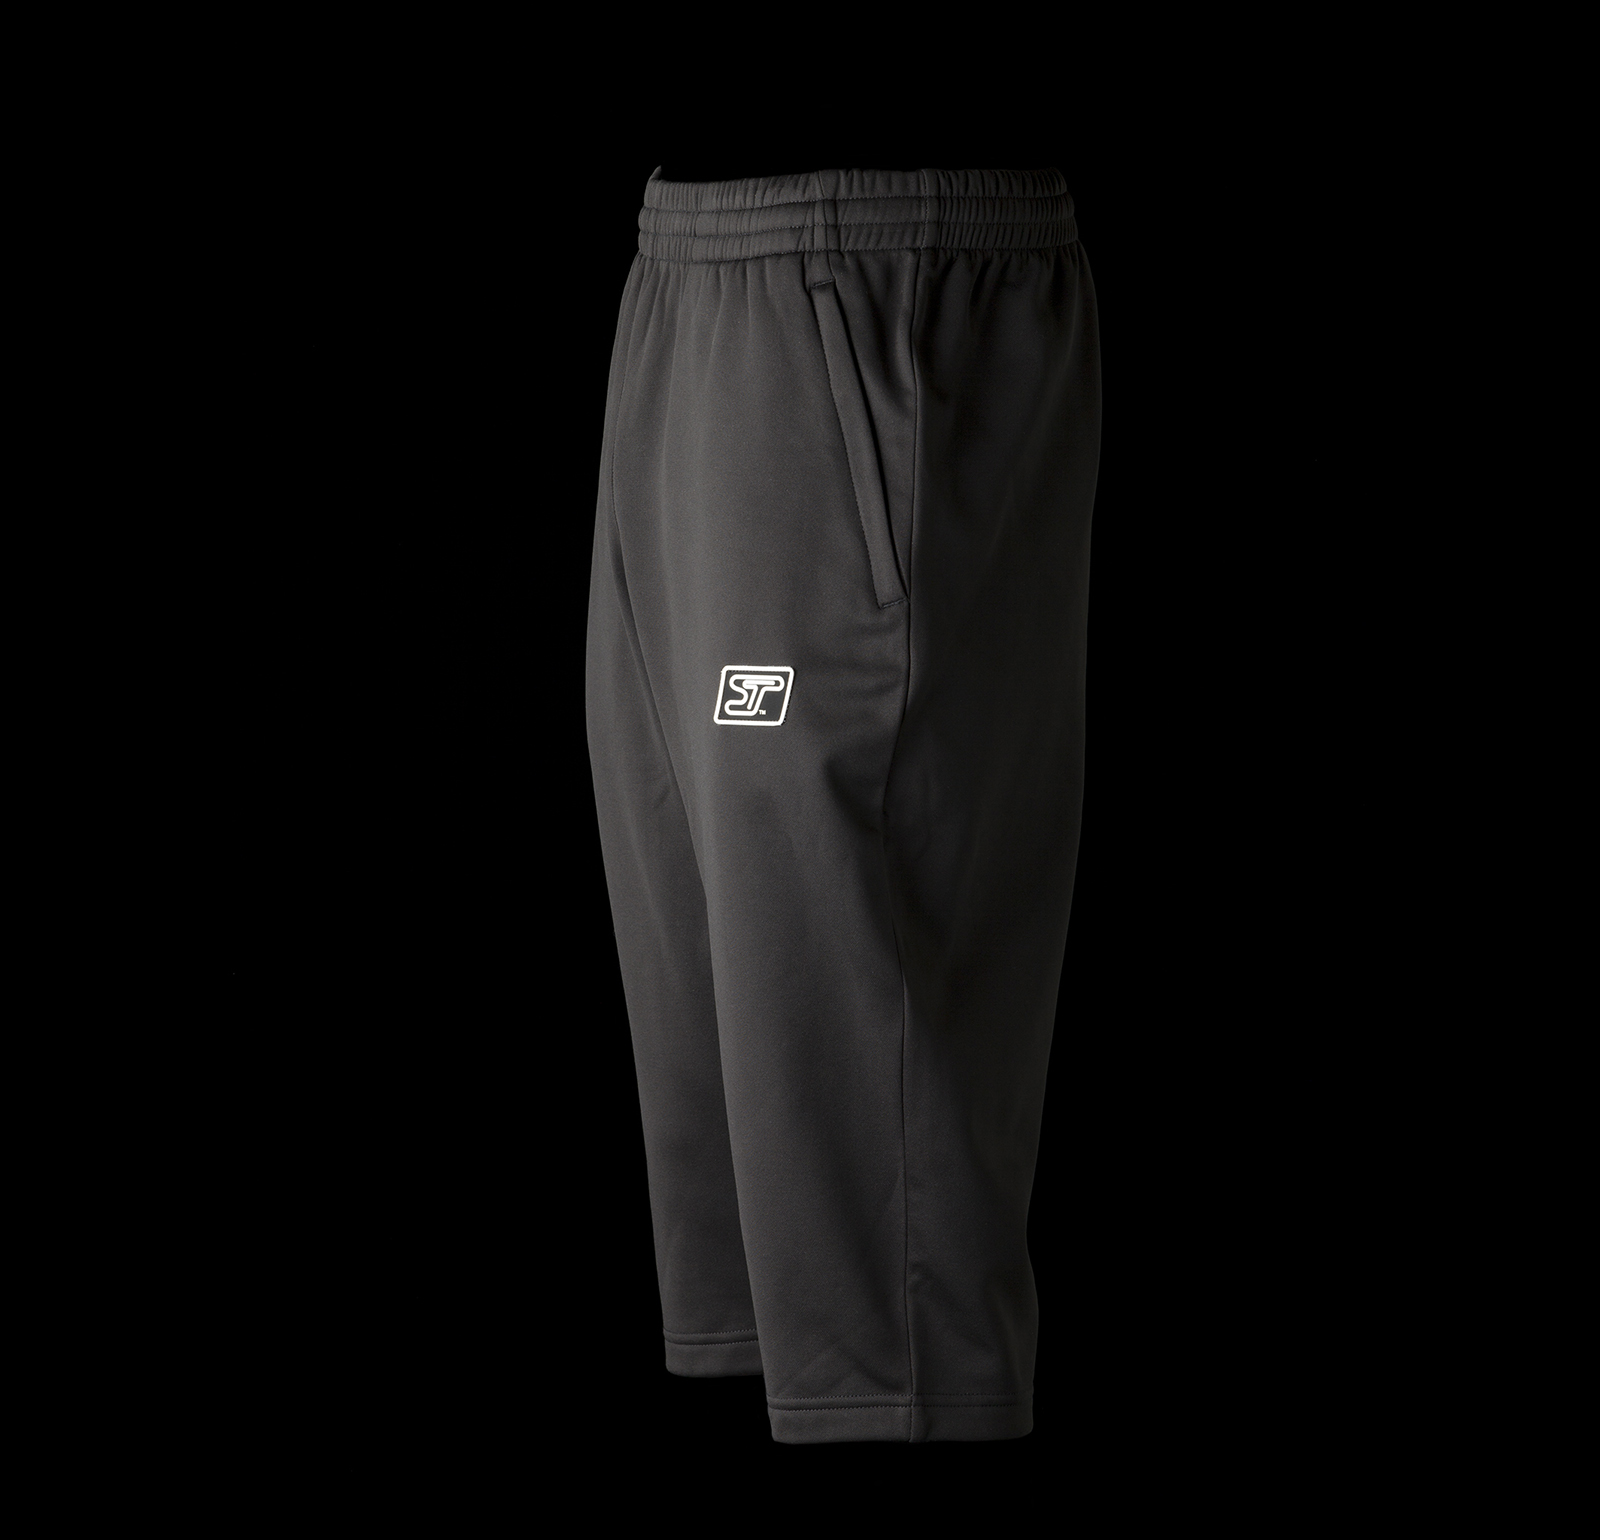 excel-3-4-pant-promo-16